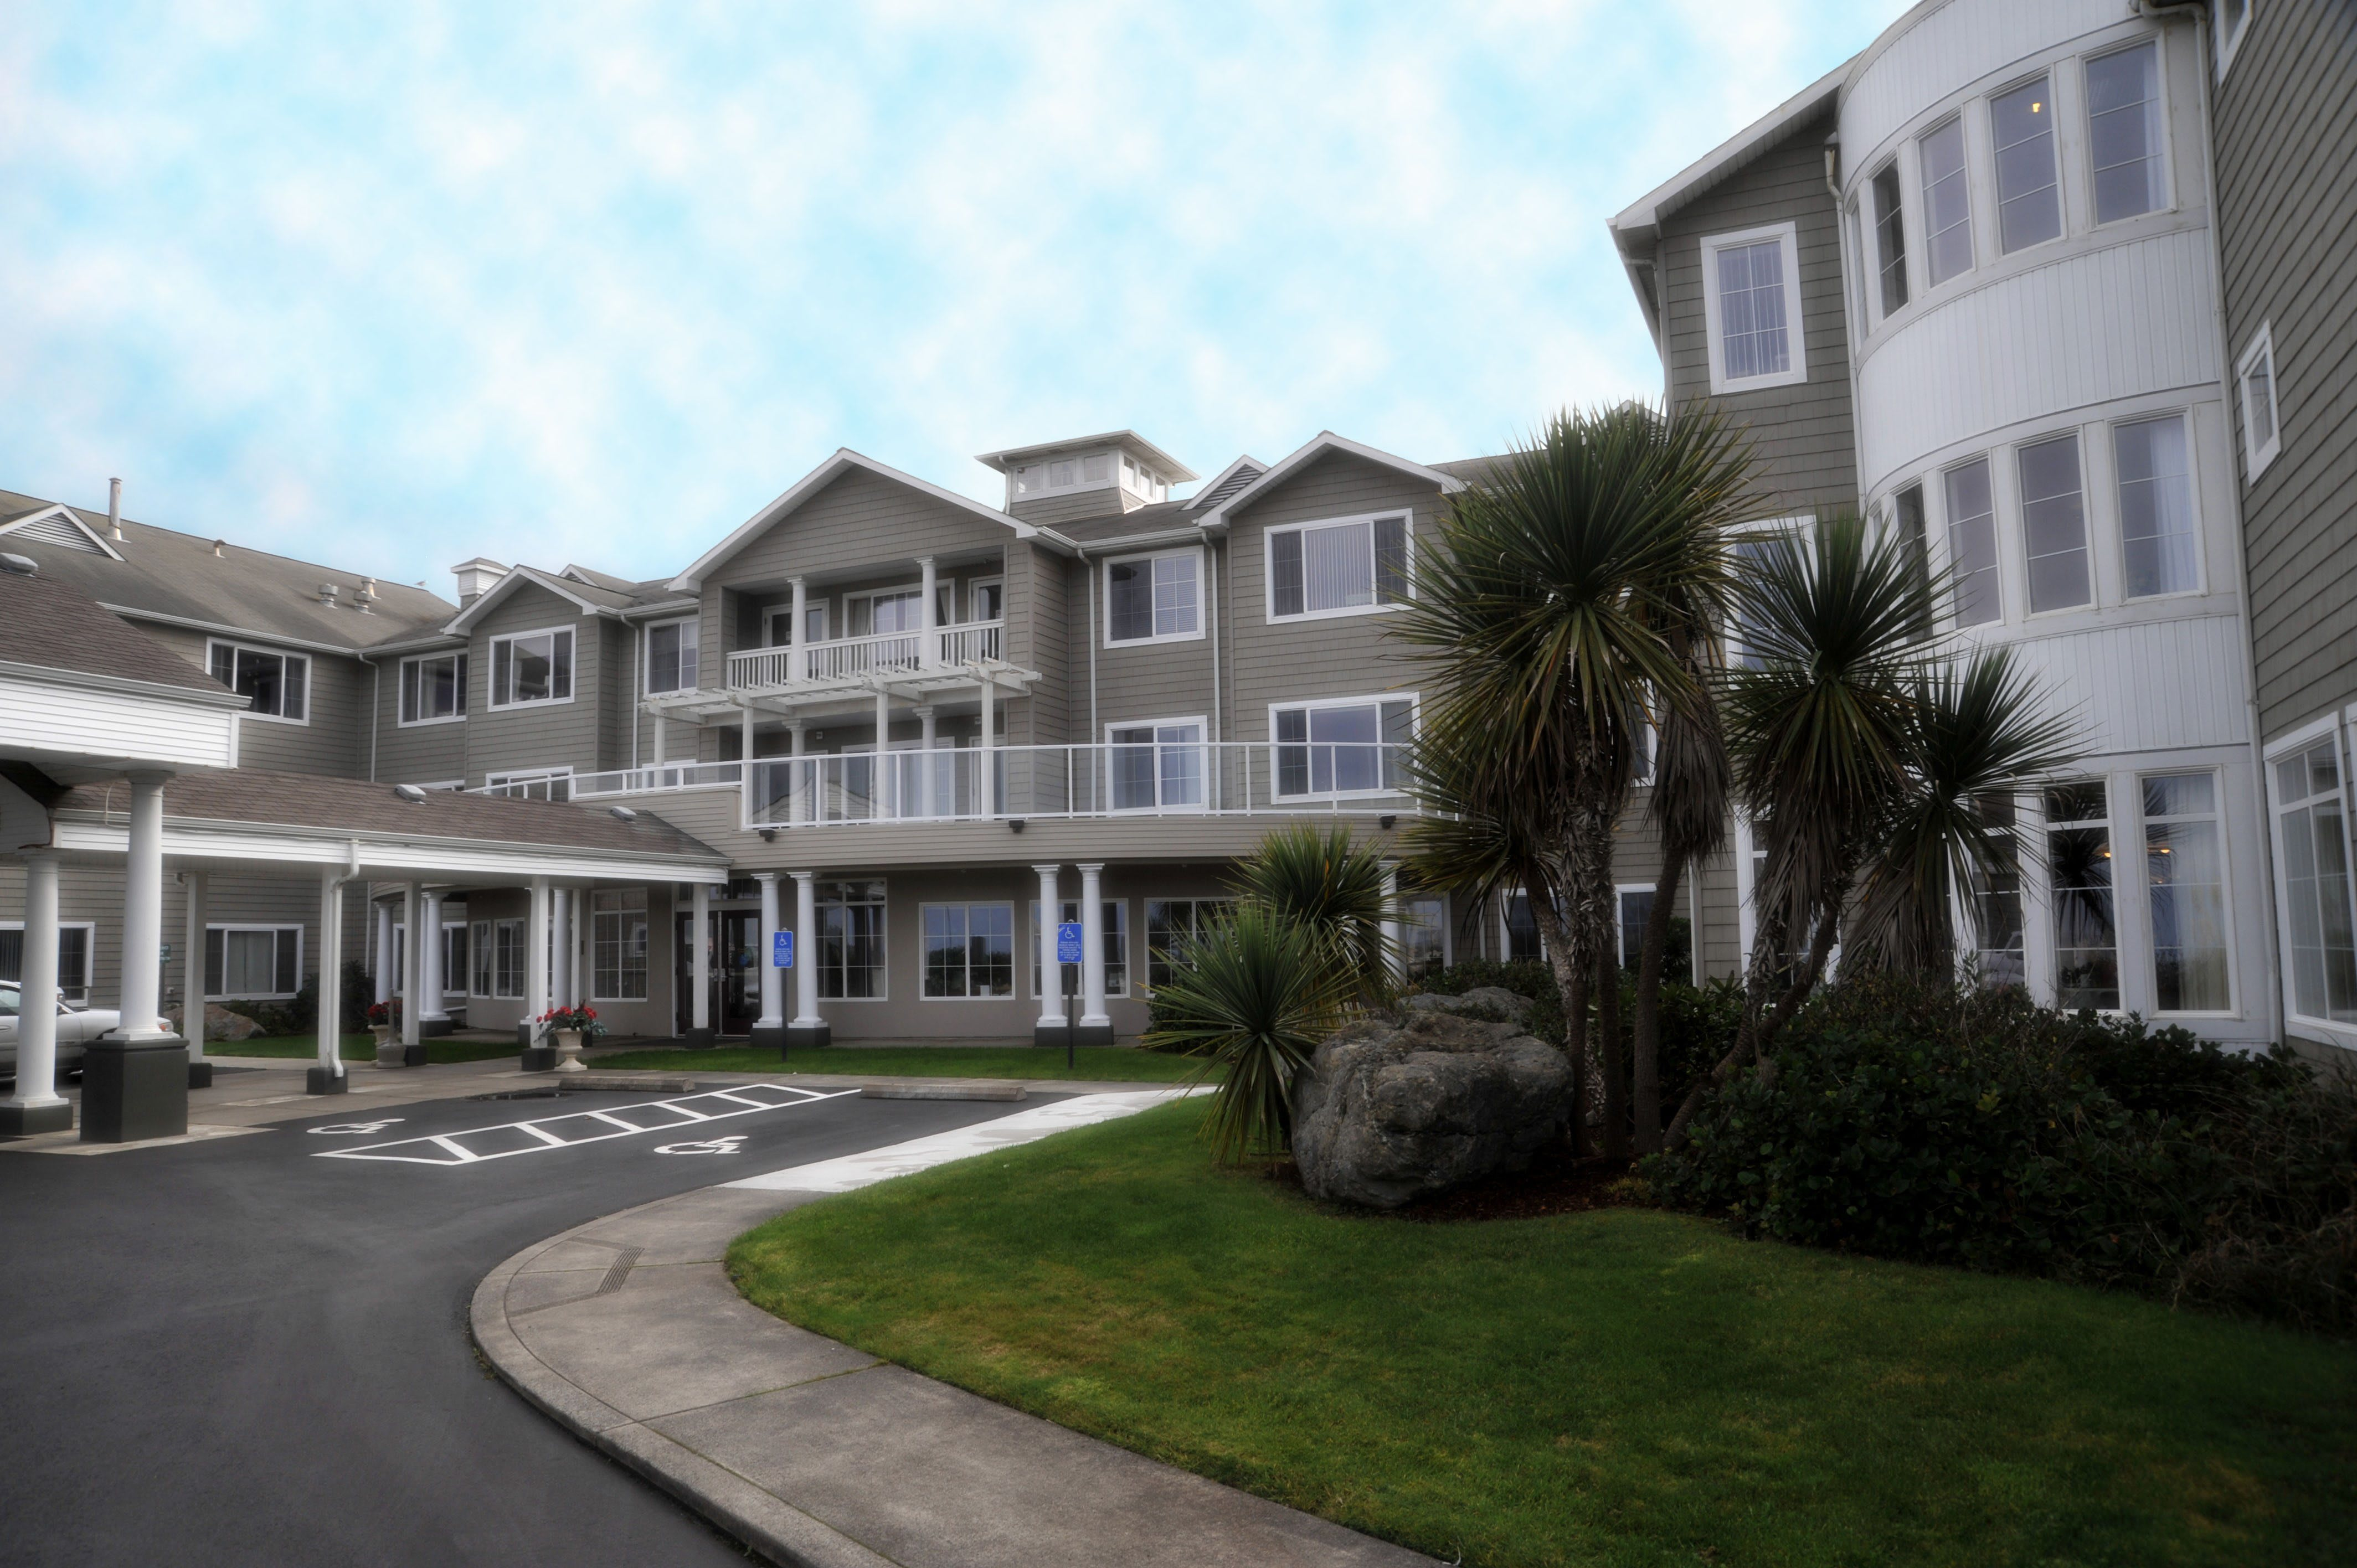 Photo 1 of Pacific View Senior Living